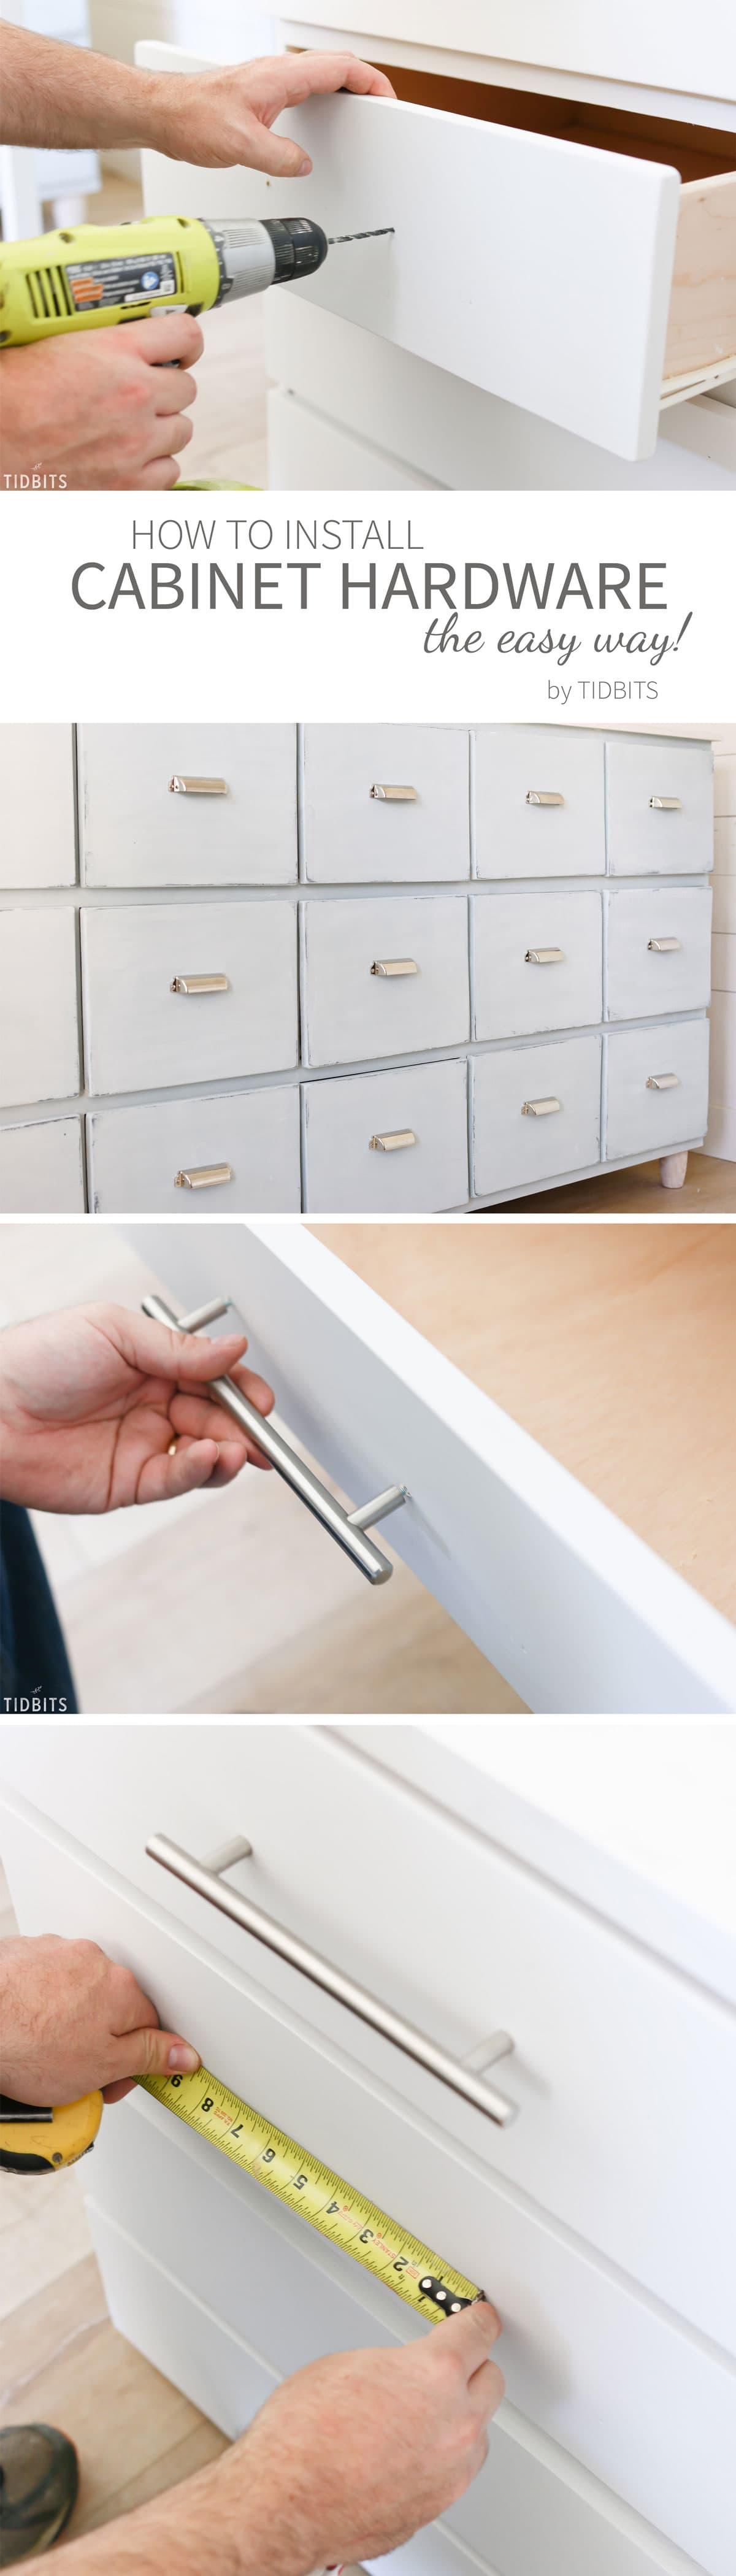 How to install cabinet hardware, the easy peasy way!